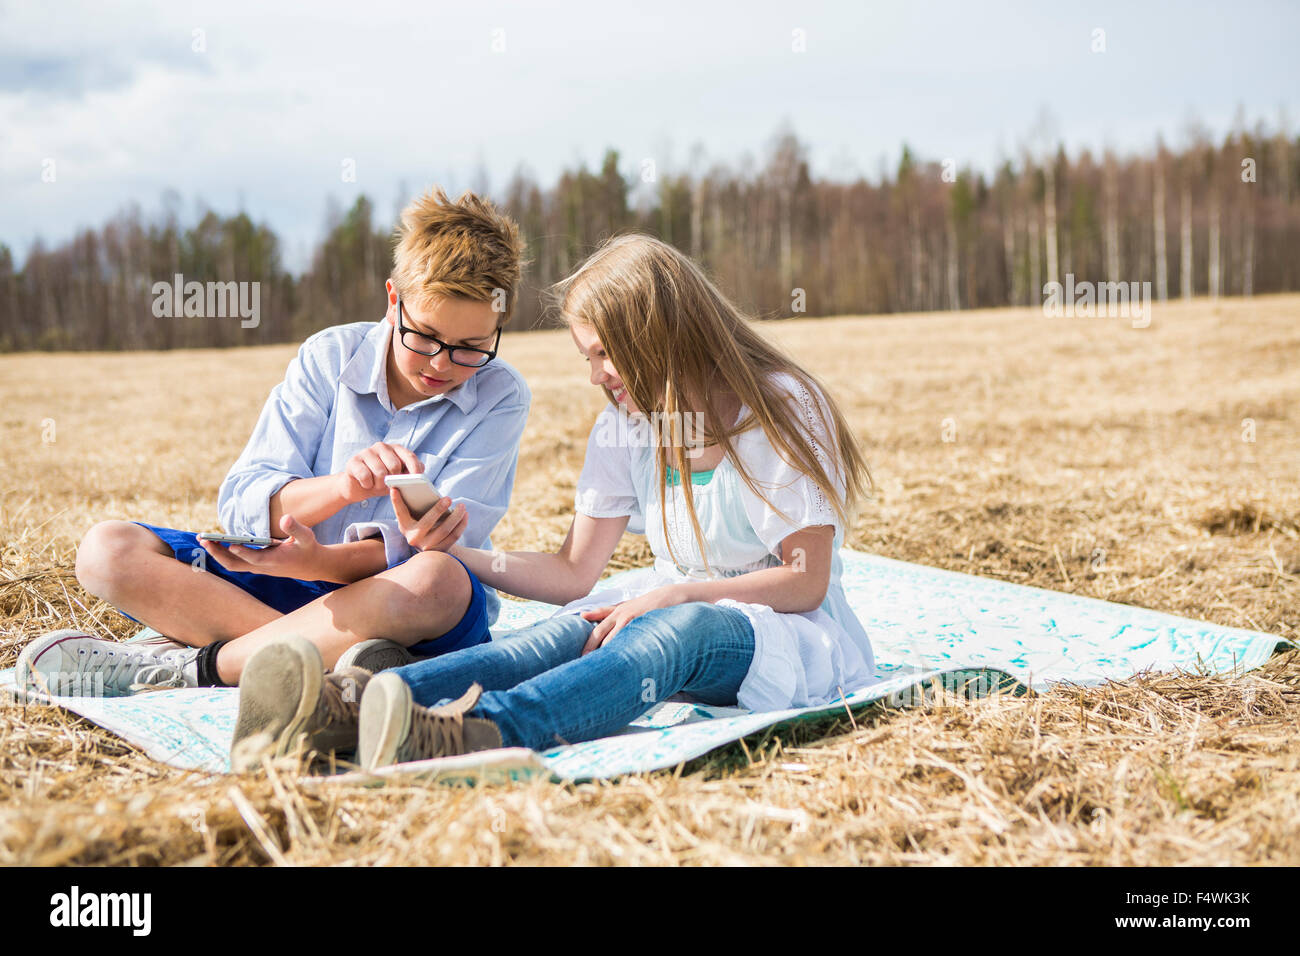 Finland, Keski-Suomi, Aanekoski, Girl (12-13) and boy (12-13) sitting on blanket in field and looking on mobile - Stock Image